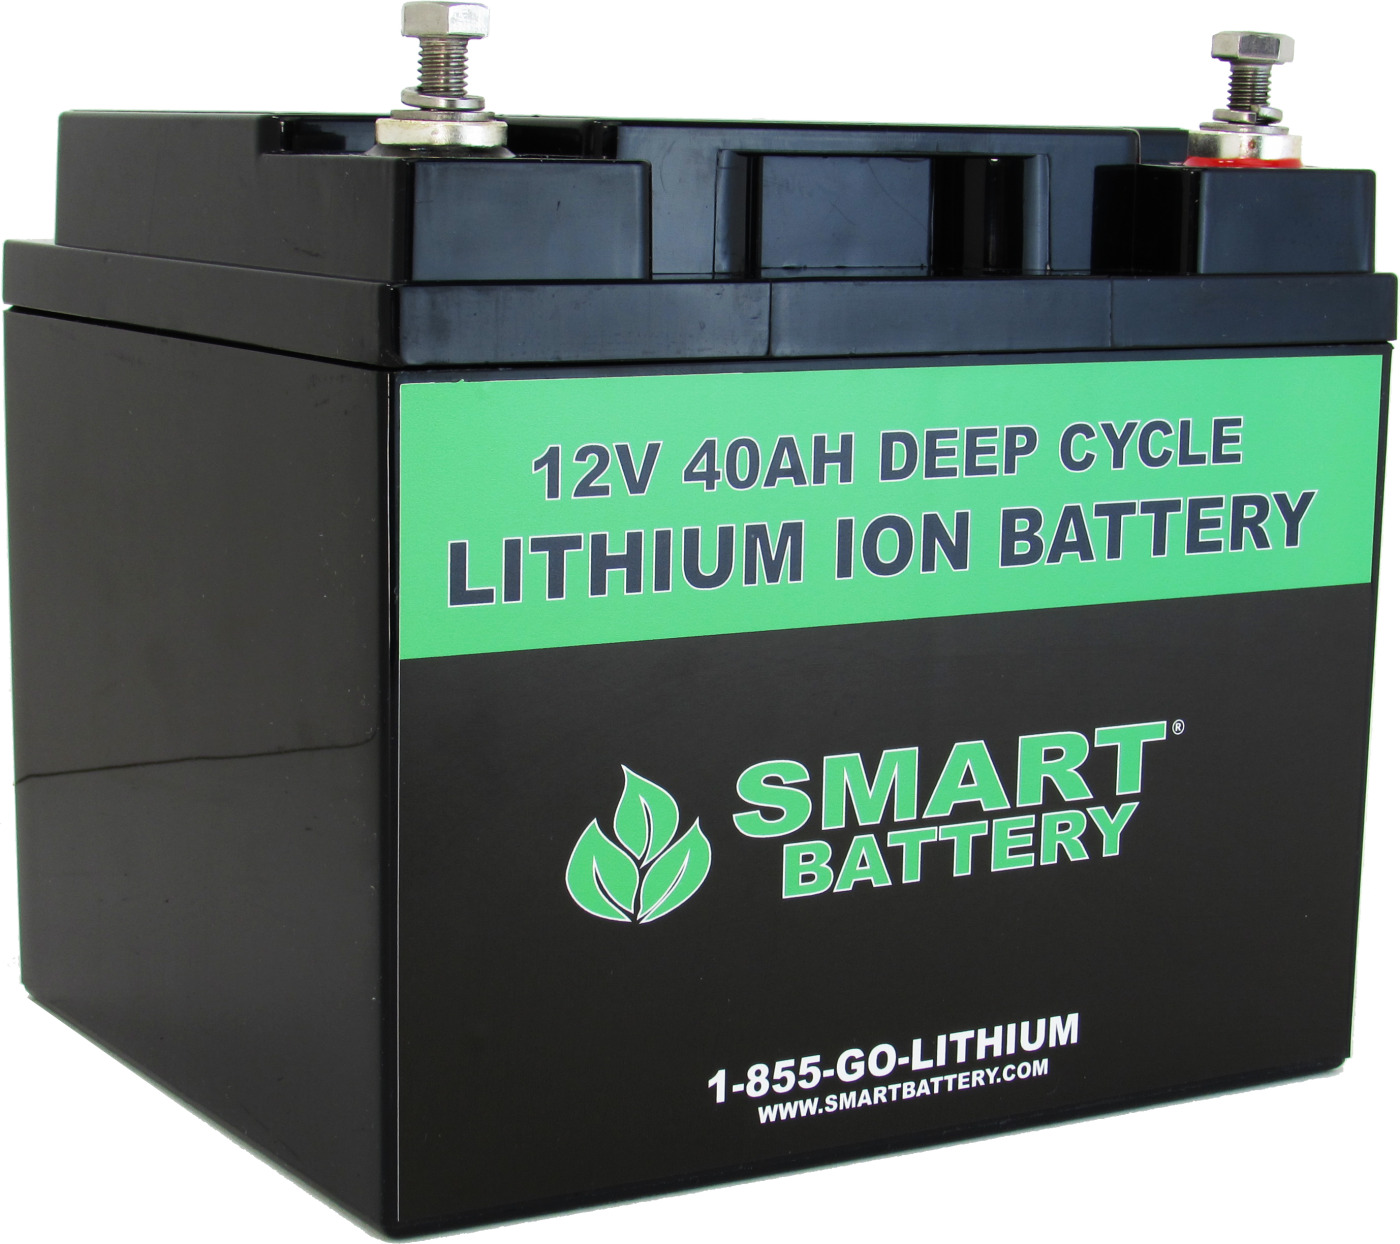 12v 40ah Lithium Ion Battery Chargers And Voltmeters